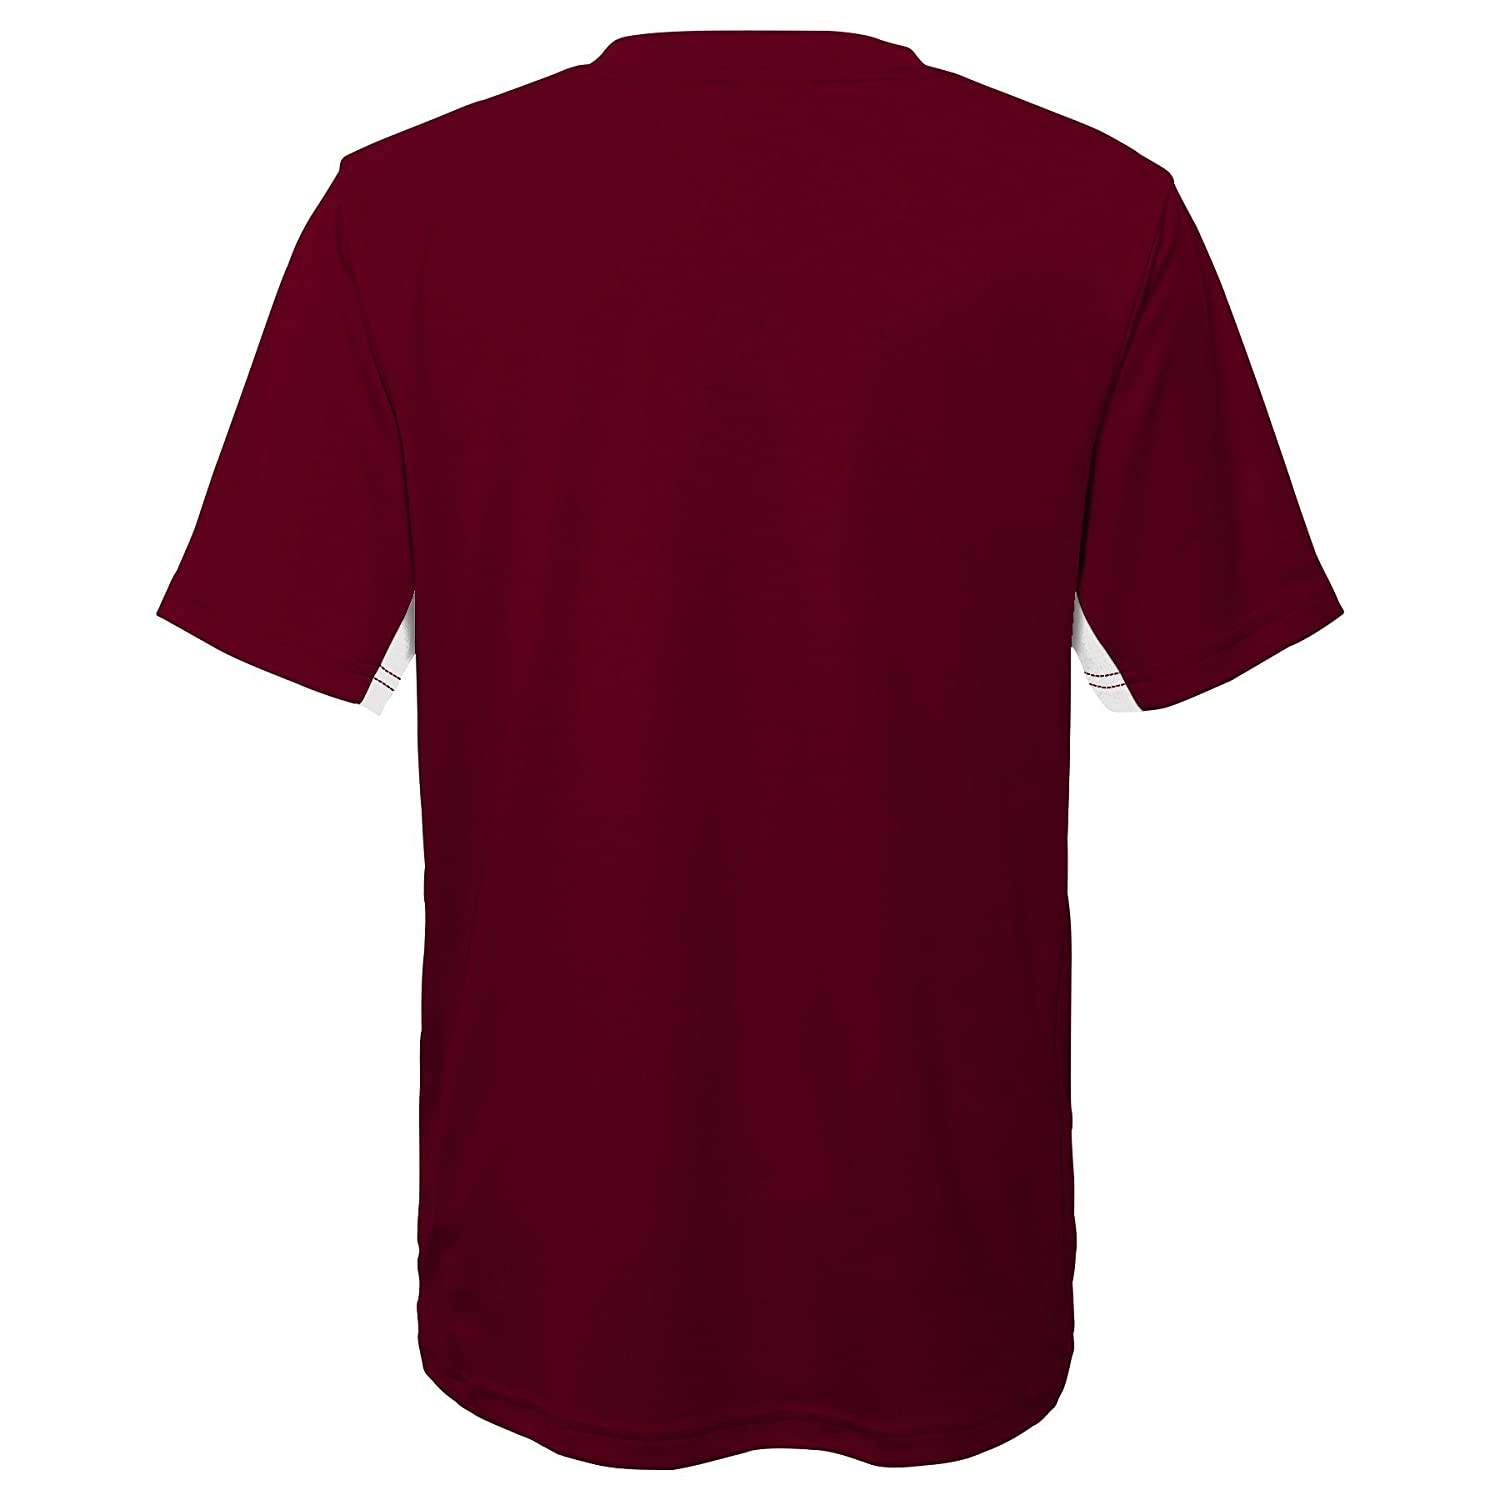 Maroon Youth X-Large 18 NCAA by Outerstuff NCAA Texas A/&M Aggies Youth Boys Mainframe: Short Sleeve Performance Top